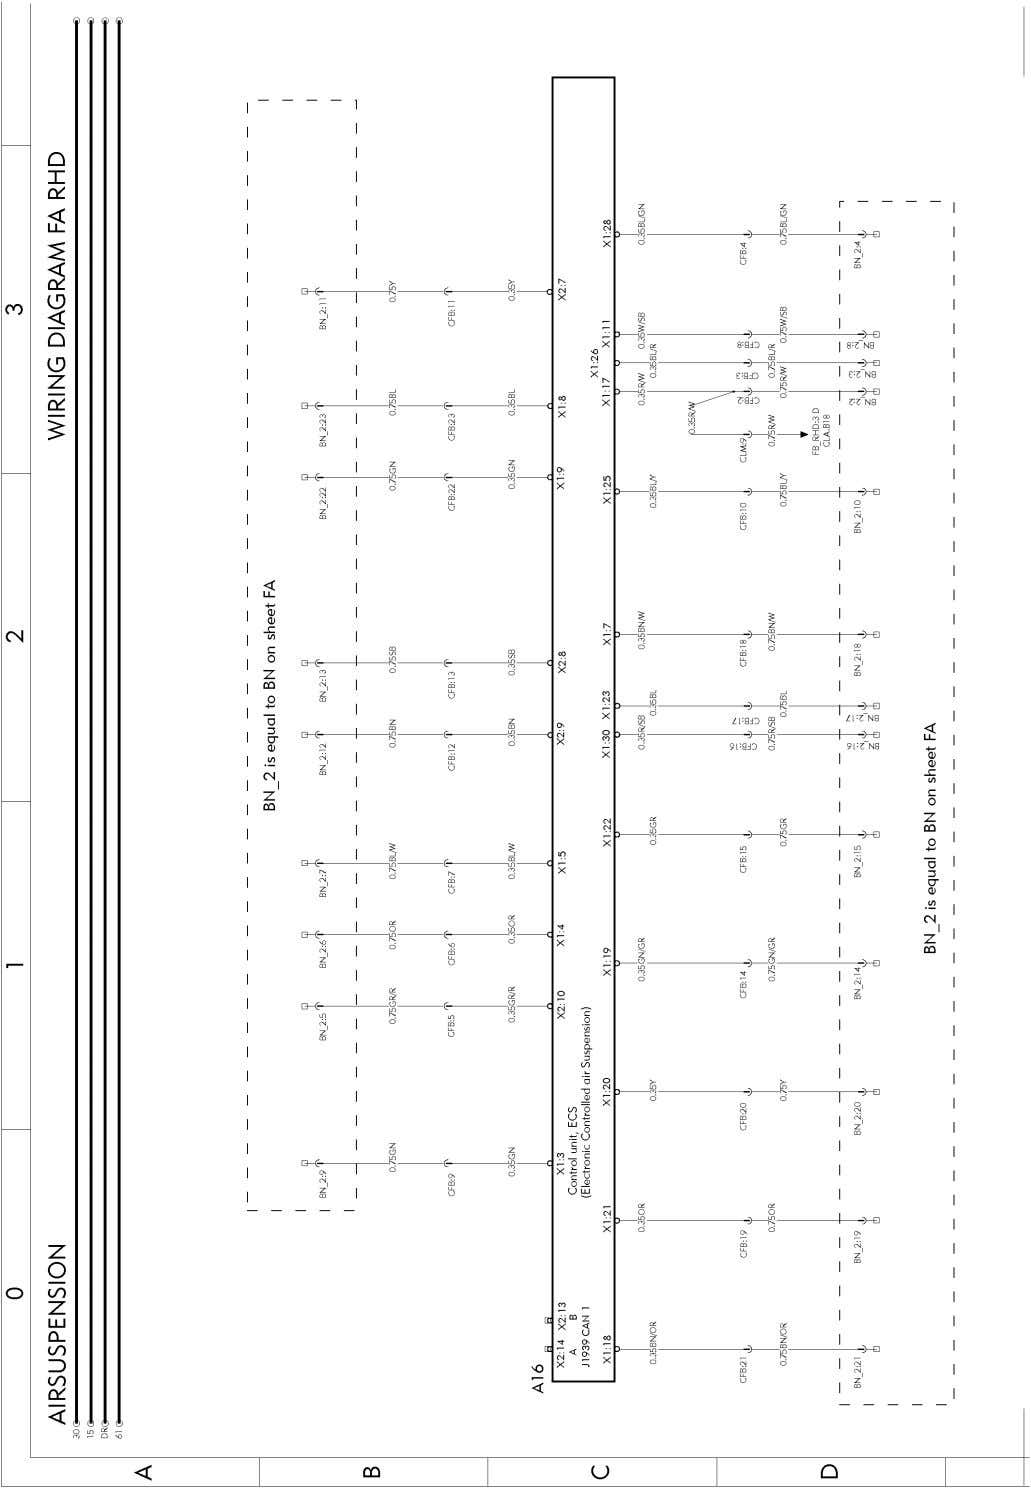 T3028872 Wiring diagram Page 47 (298)